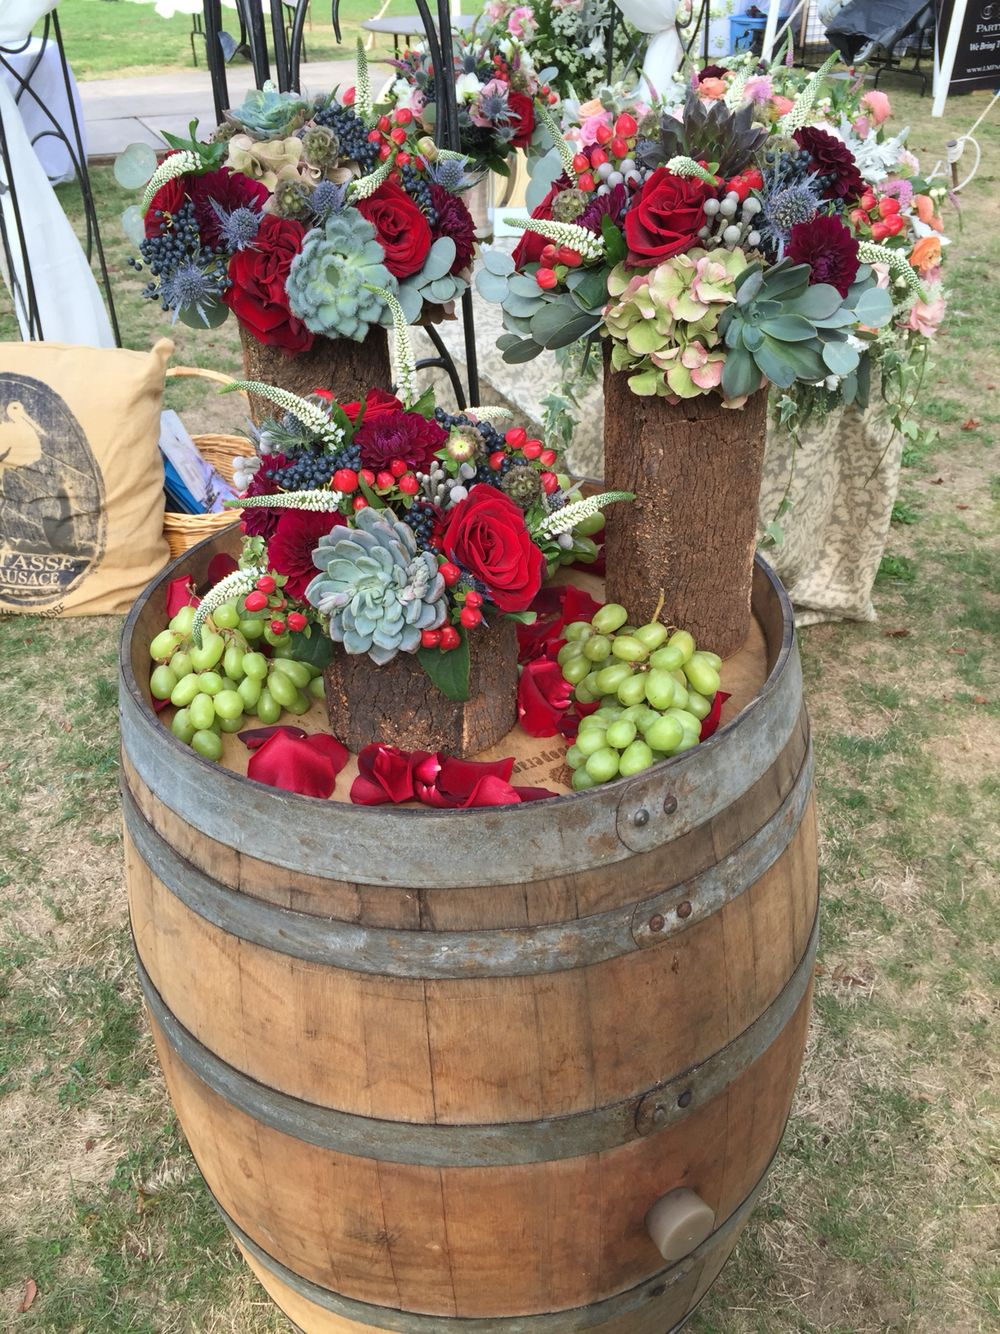 Gorgeous wine barrel succulent and tree bark vases in outdoor gorgeous wine barrel succulent and tree bark vases in outdoor setting contact marion at the reviewsmspy